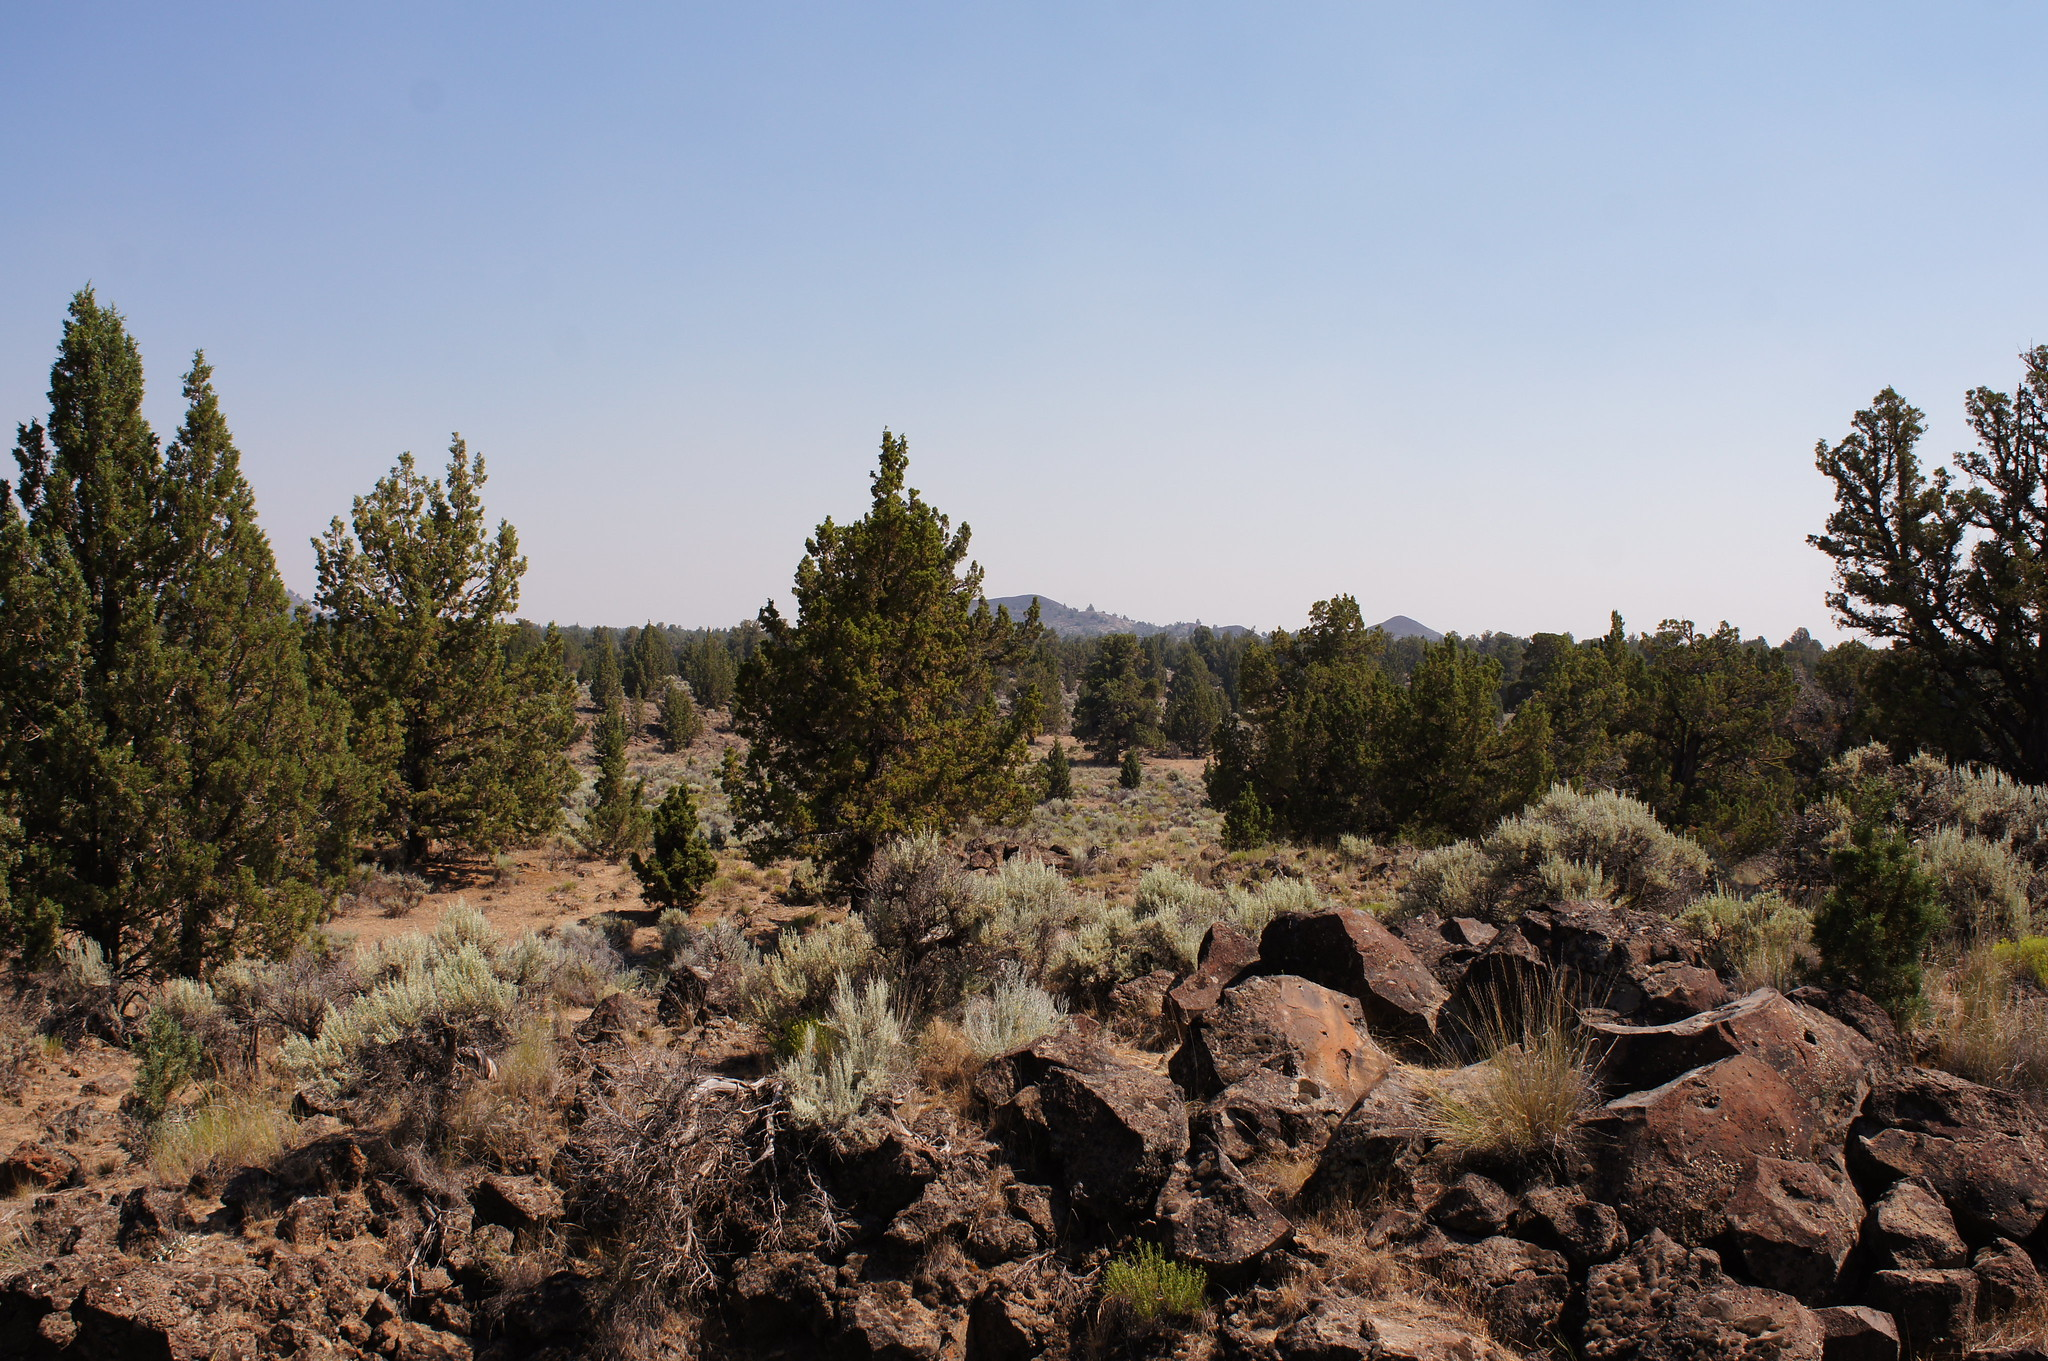 Oregon's high desert with sage brush and mountains.